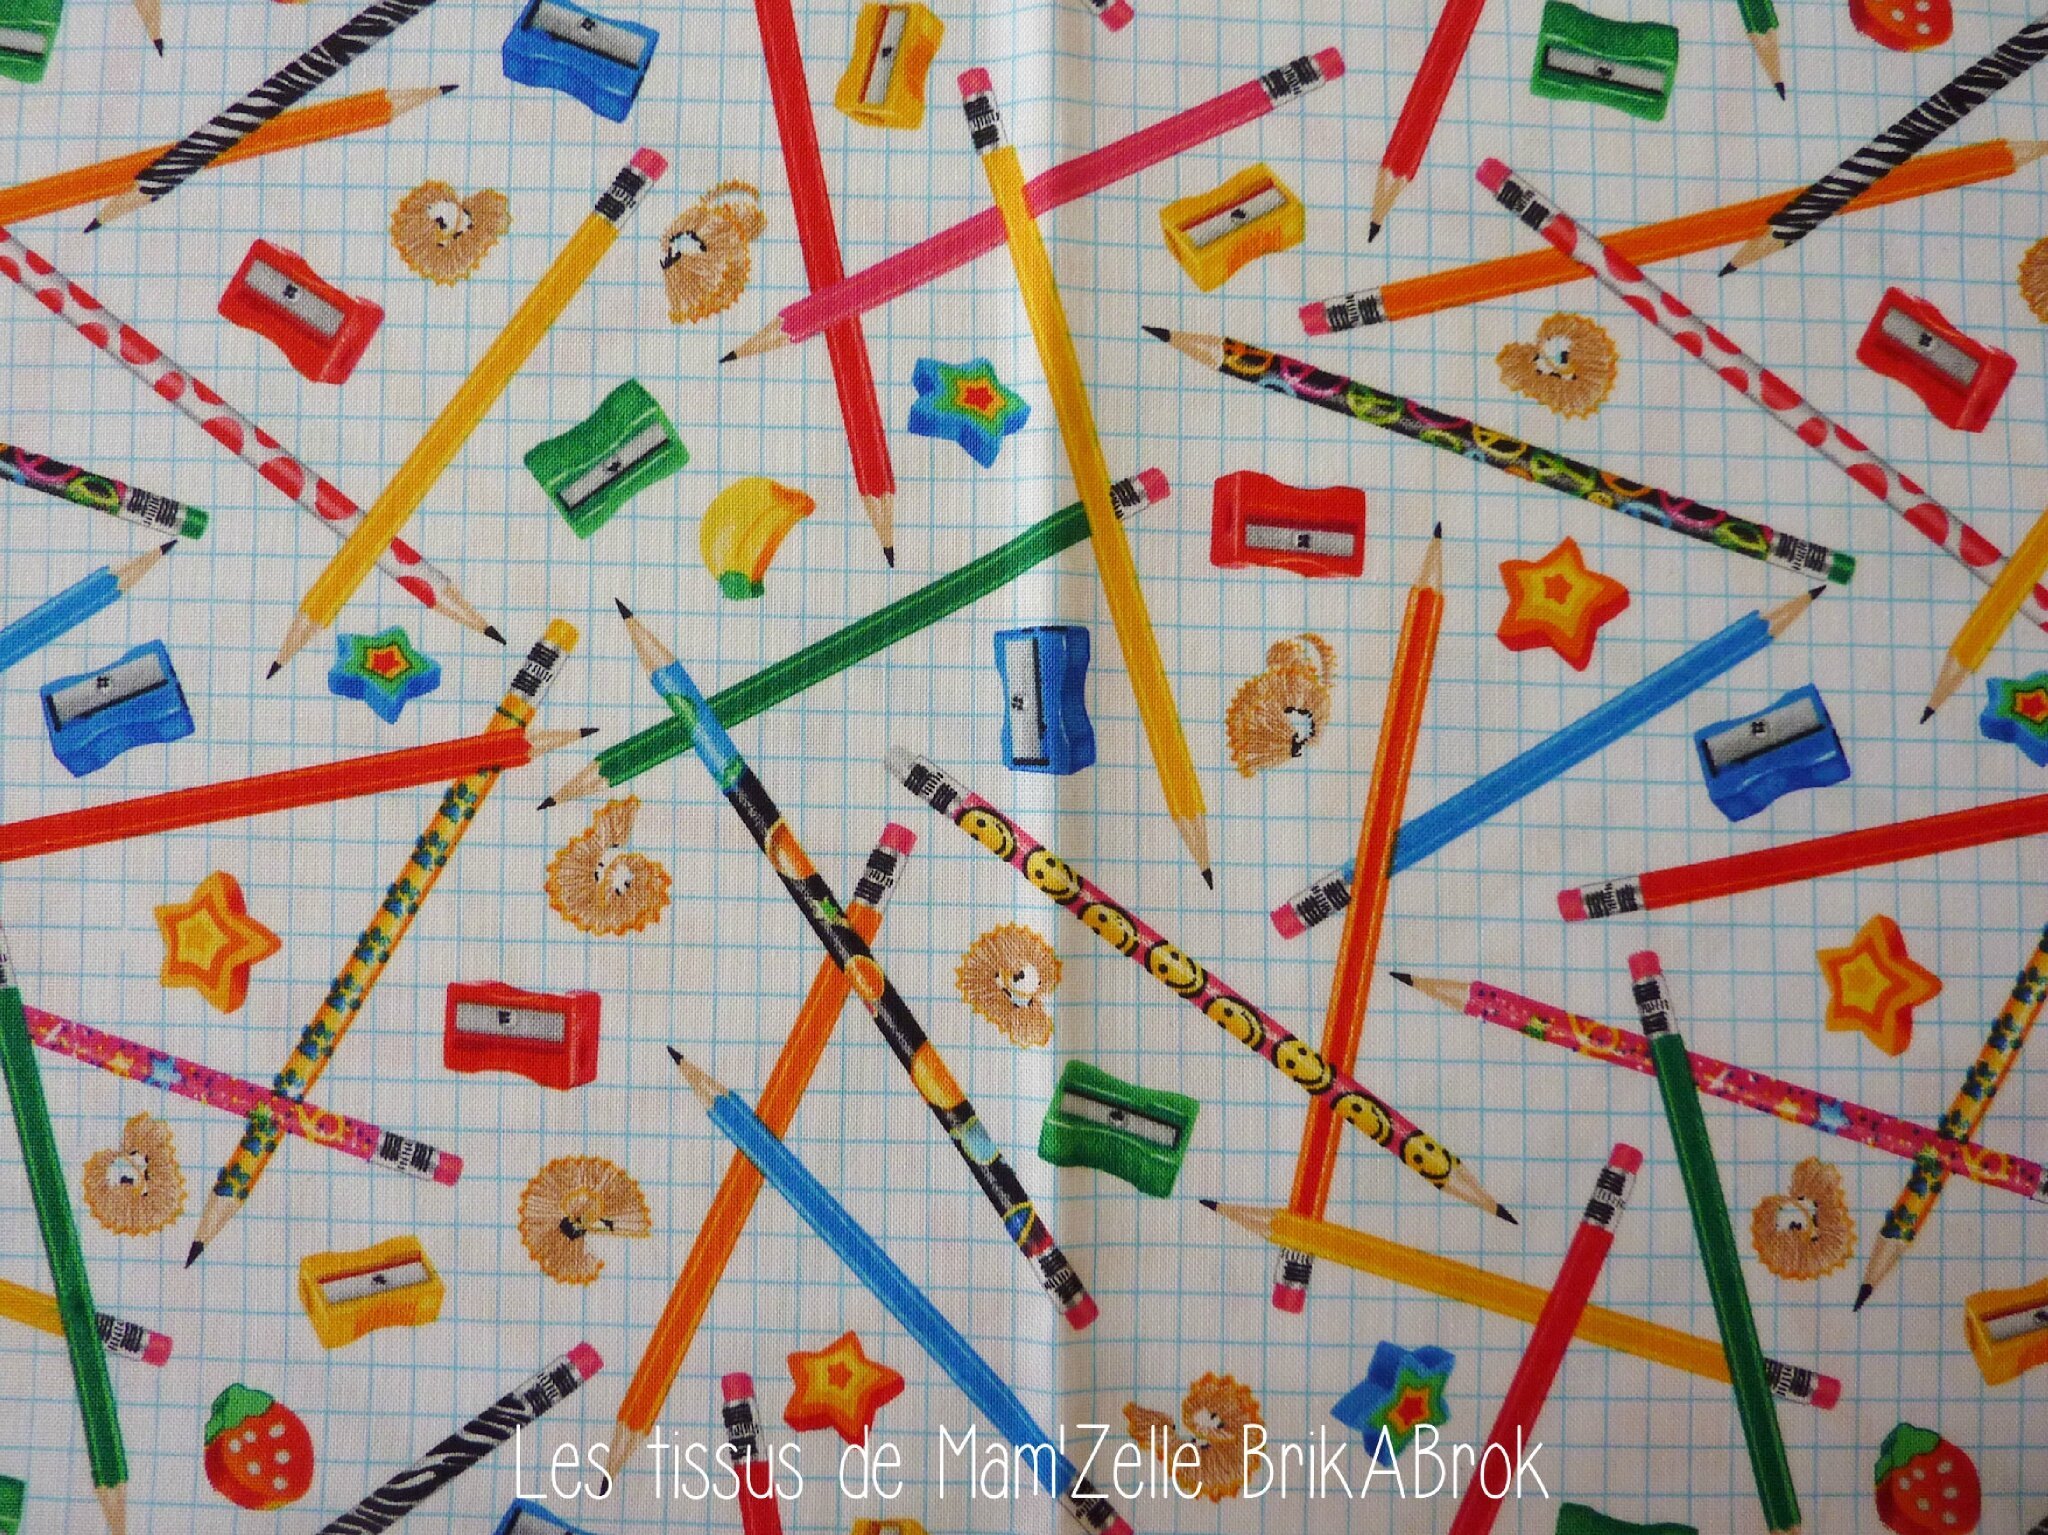 516 - Crayons et tailles-crayons